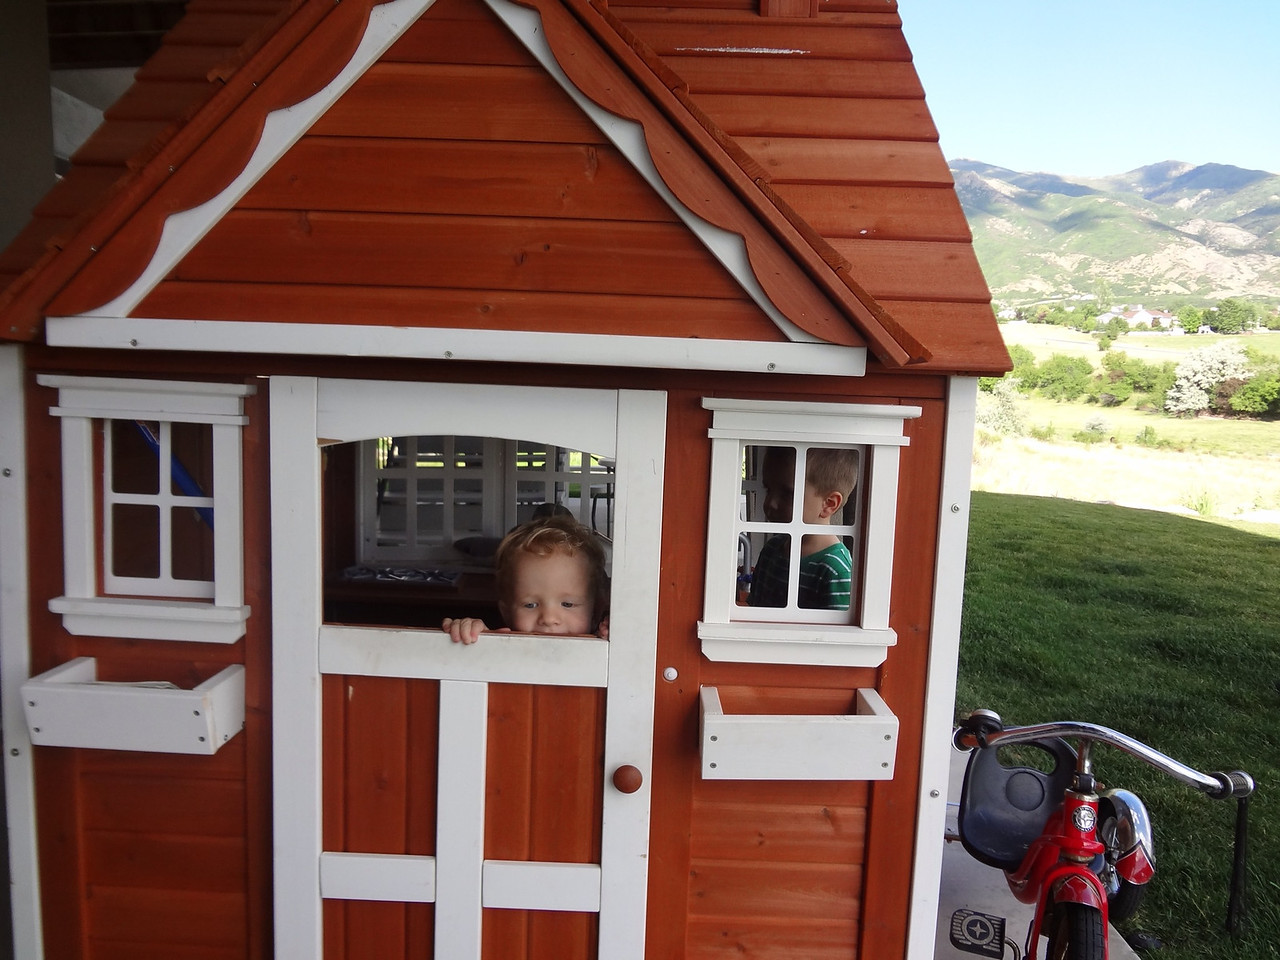 Caleb loved opening and closing the door to the playhouse